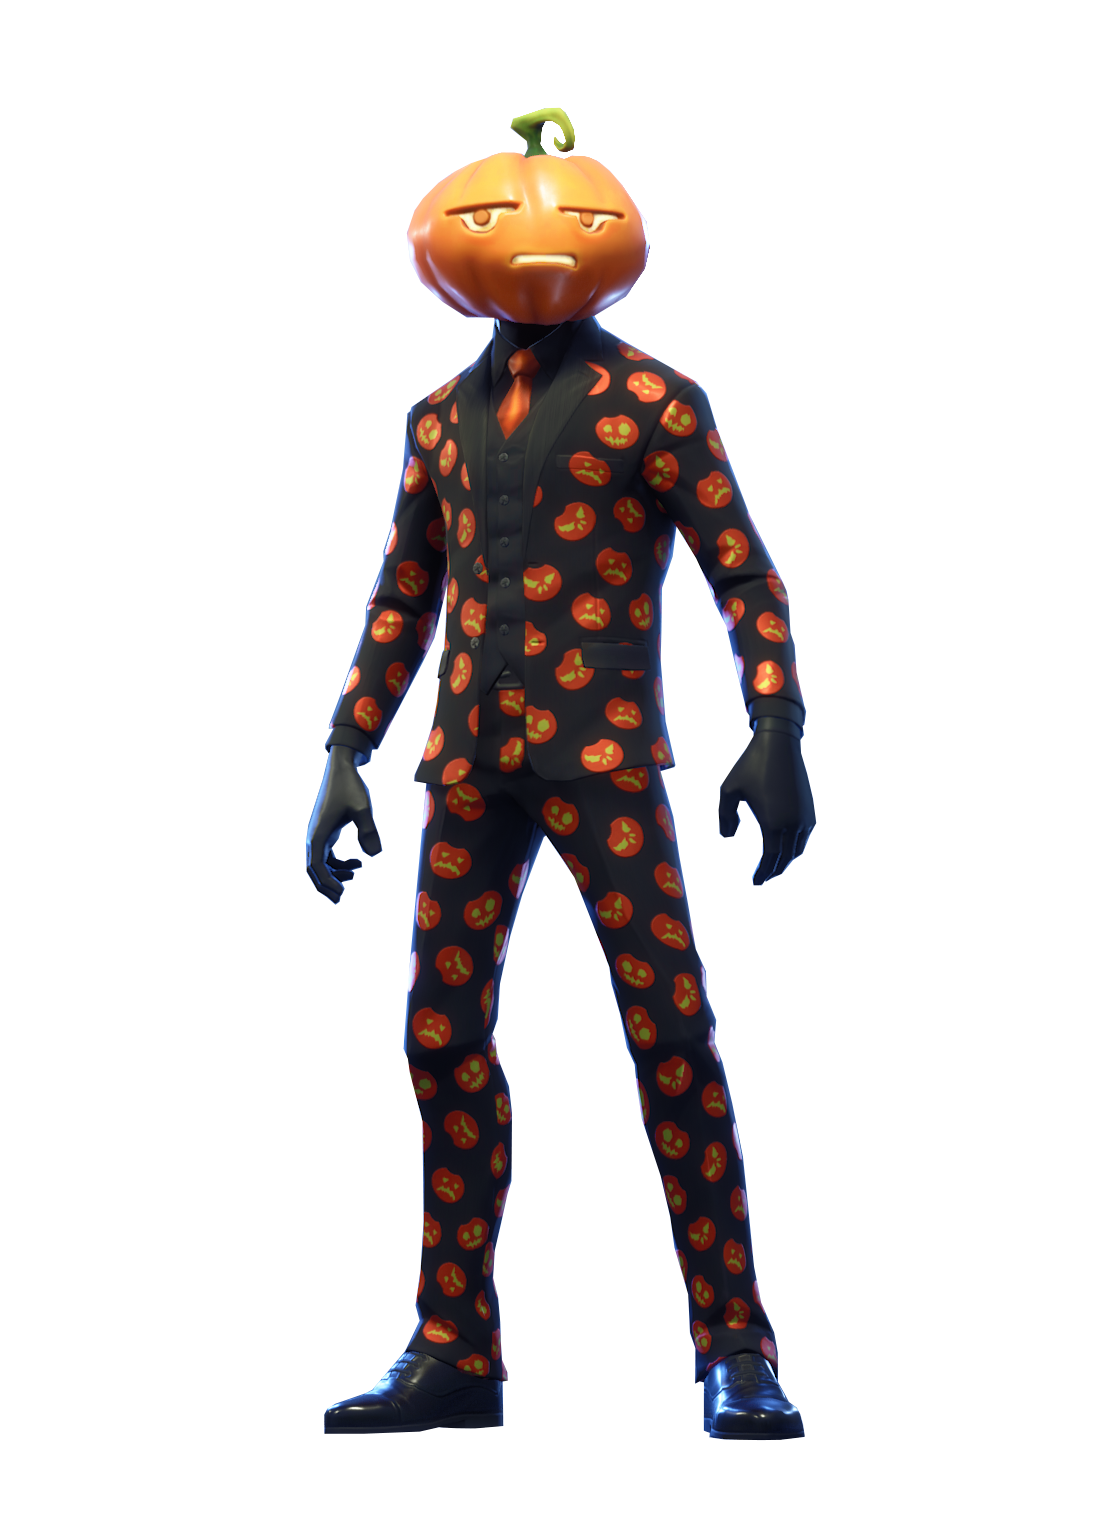 Fortnite clipart outfit. Jack gourdon skin full